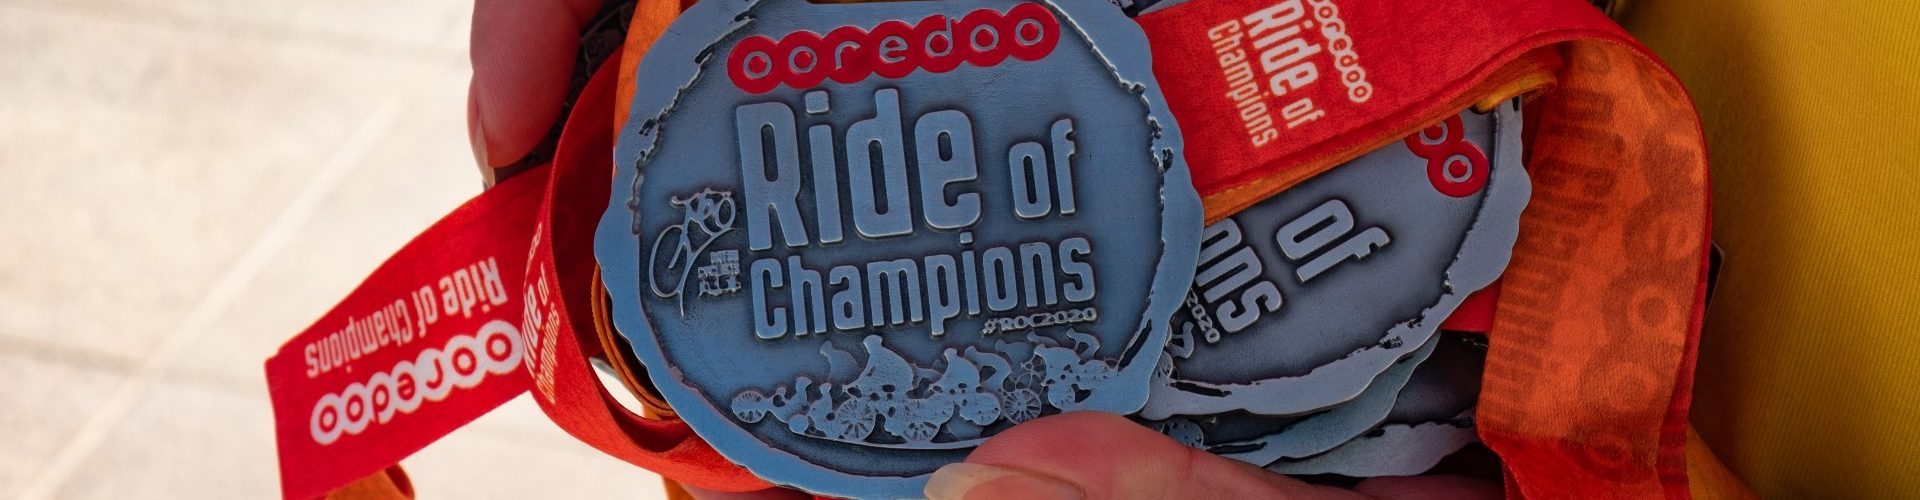 Safety First to Enable Fun Was the Key Theme at the 2020 Ooredoo Ride of Champions, Enabling Thousands to Have Fun, Get Exercise and look after their Mental Health in 2020